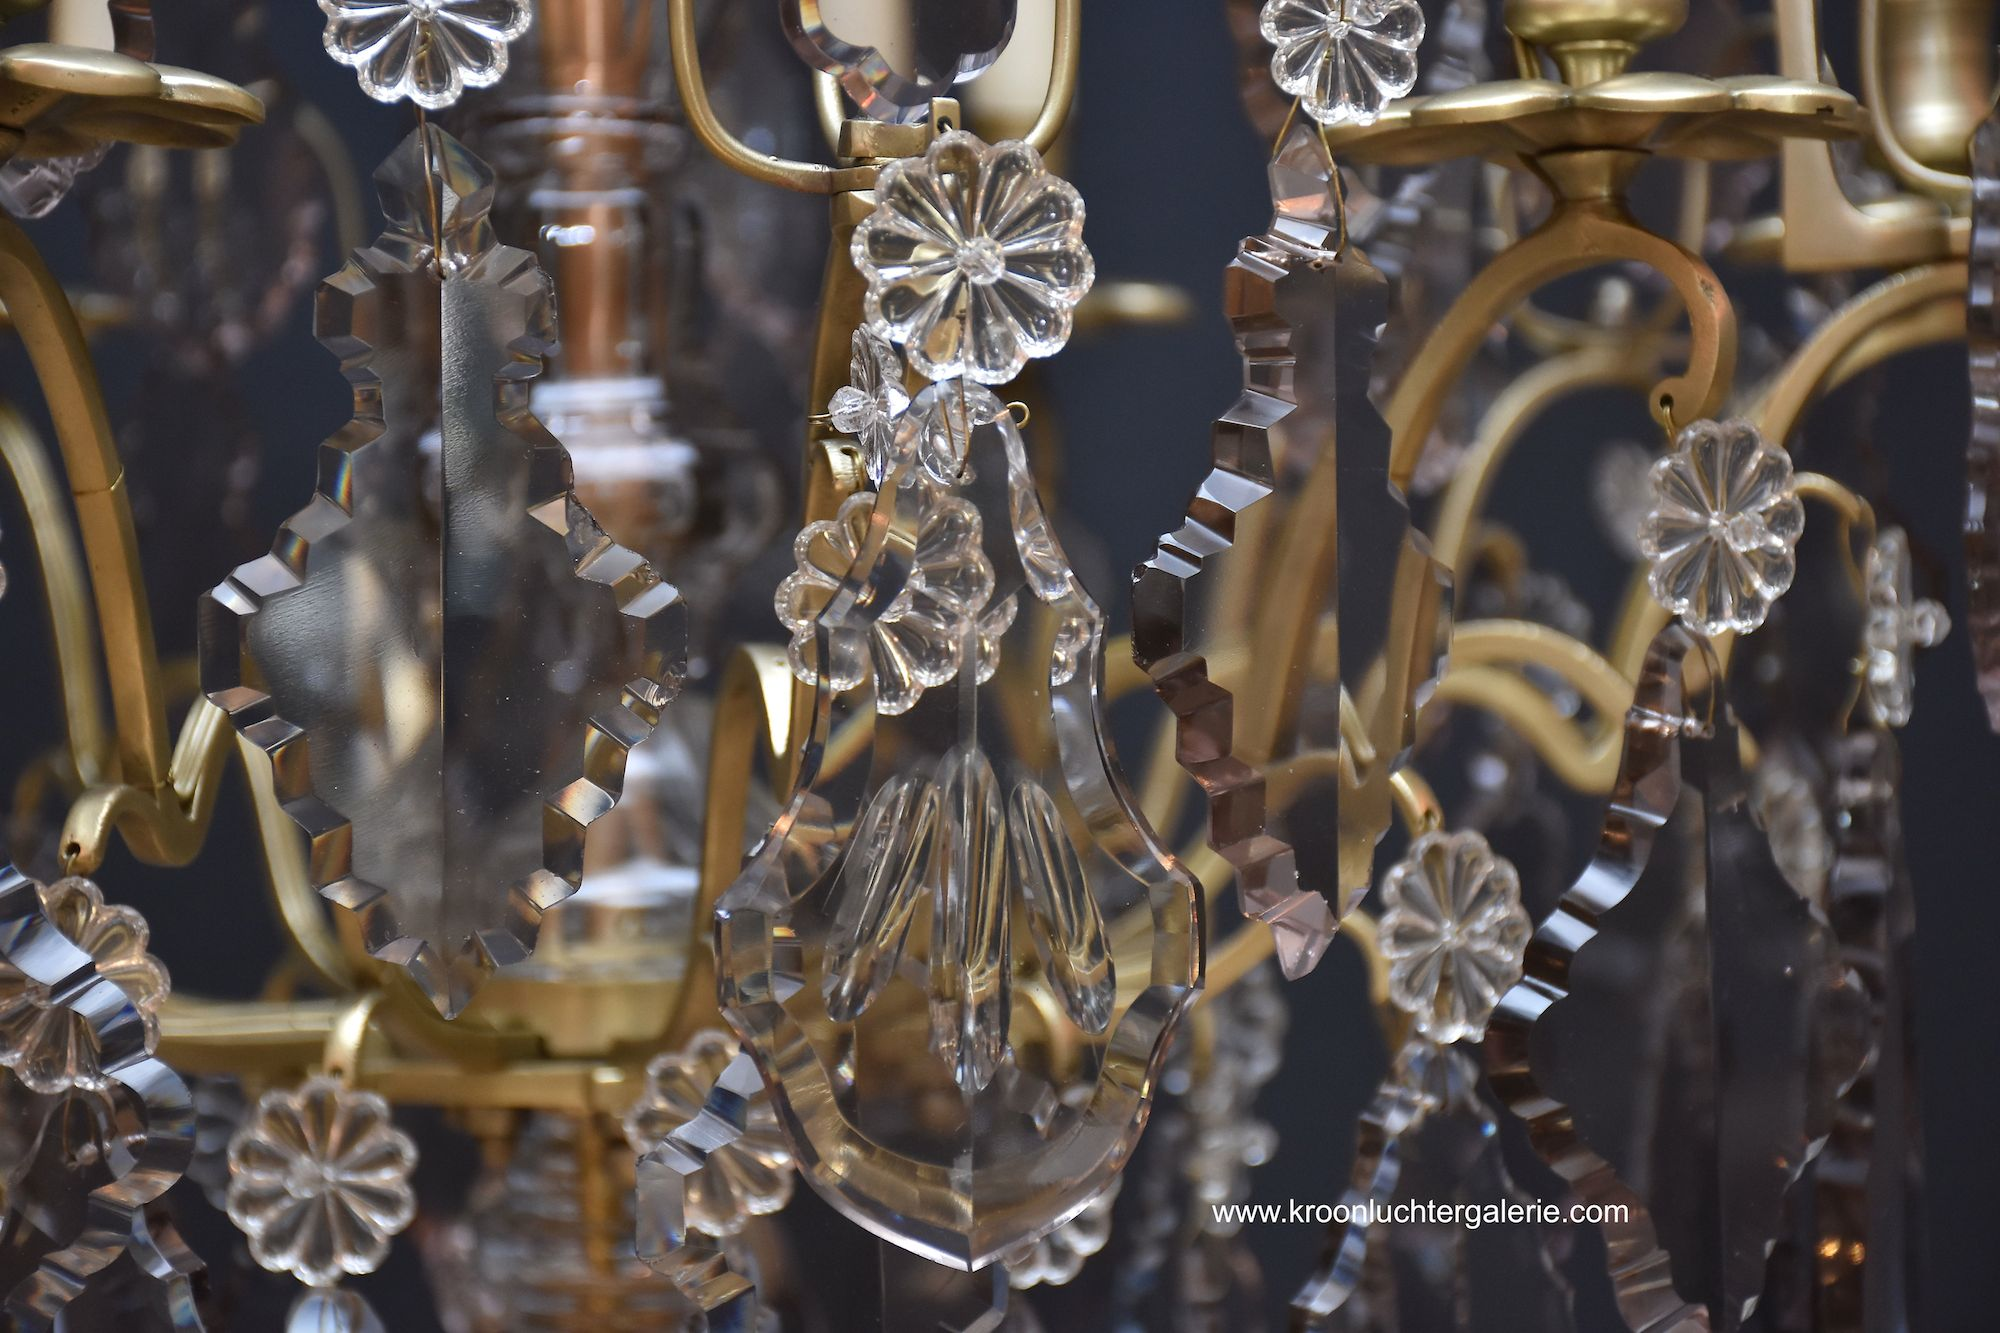 French chandelier with candles in the style of Louis XV